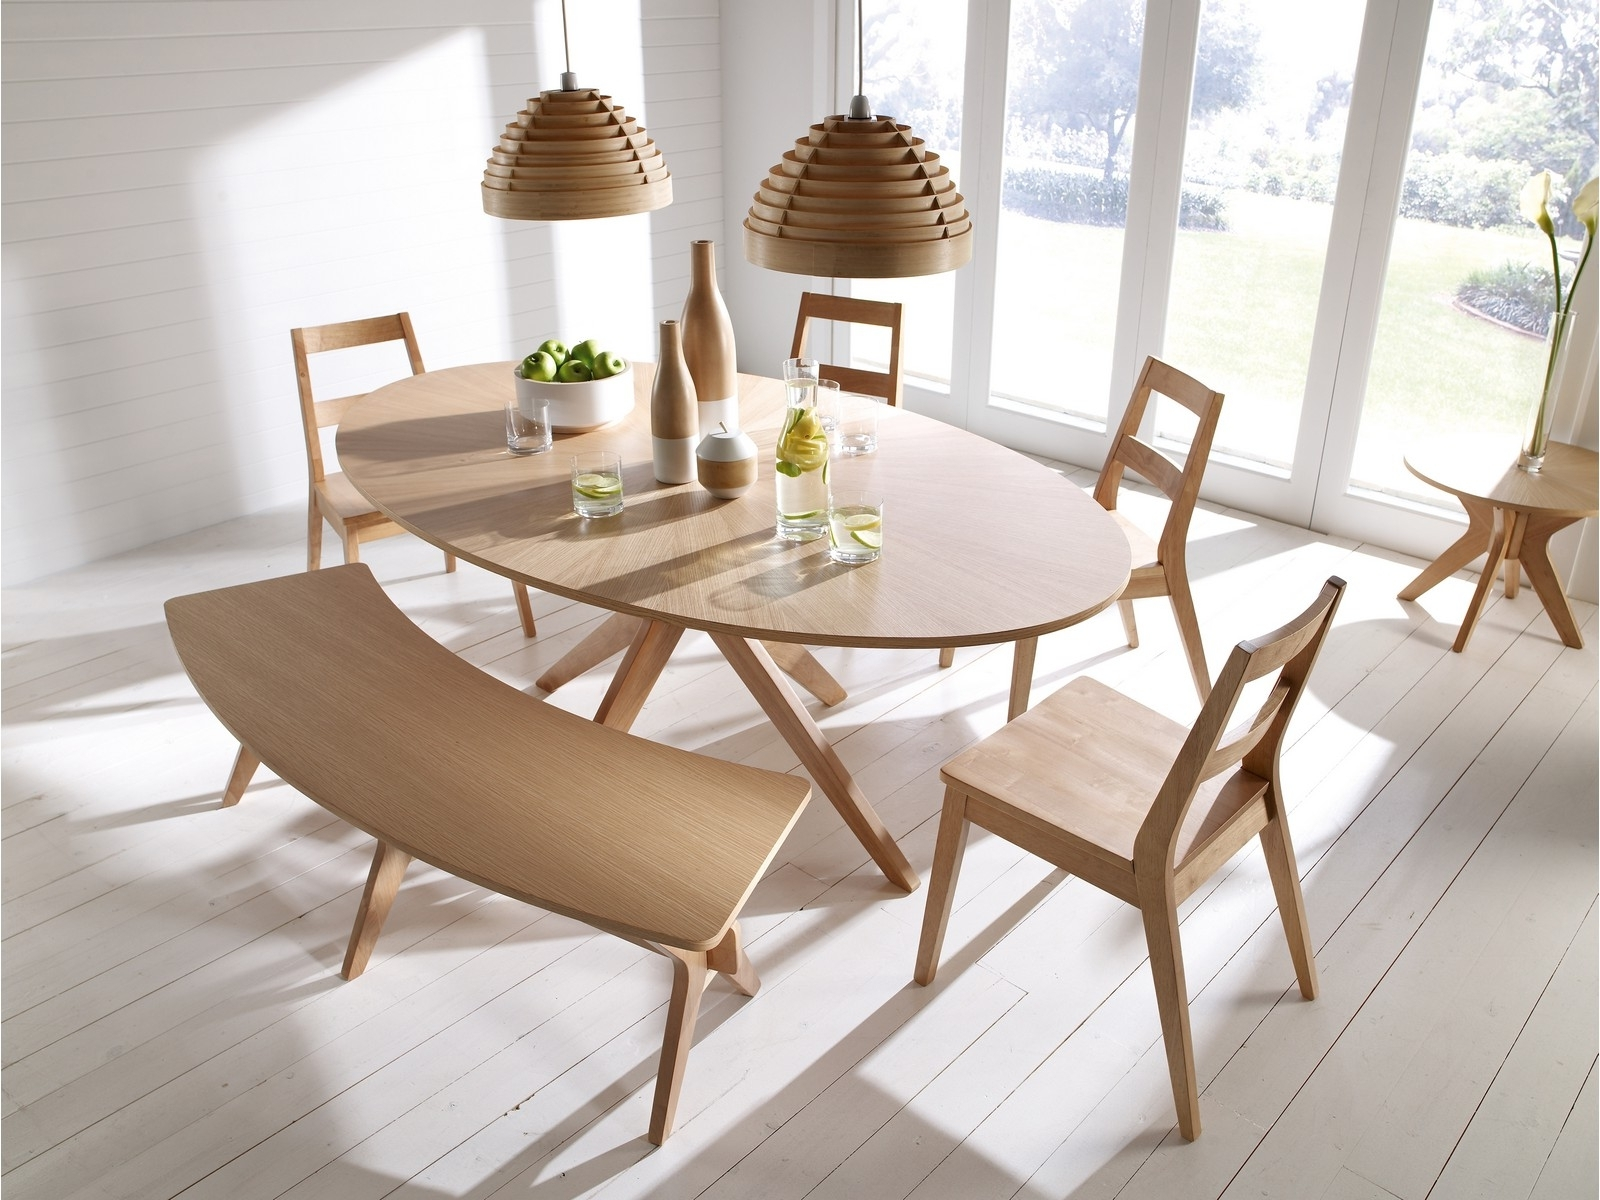 Favorite Malmo Dining Table Set Chairs Bench Oak Veneer & Solid Wood Inside Dining Tables Chairs (View 13 of 25)